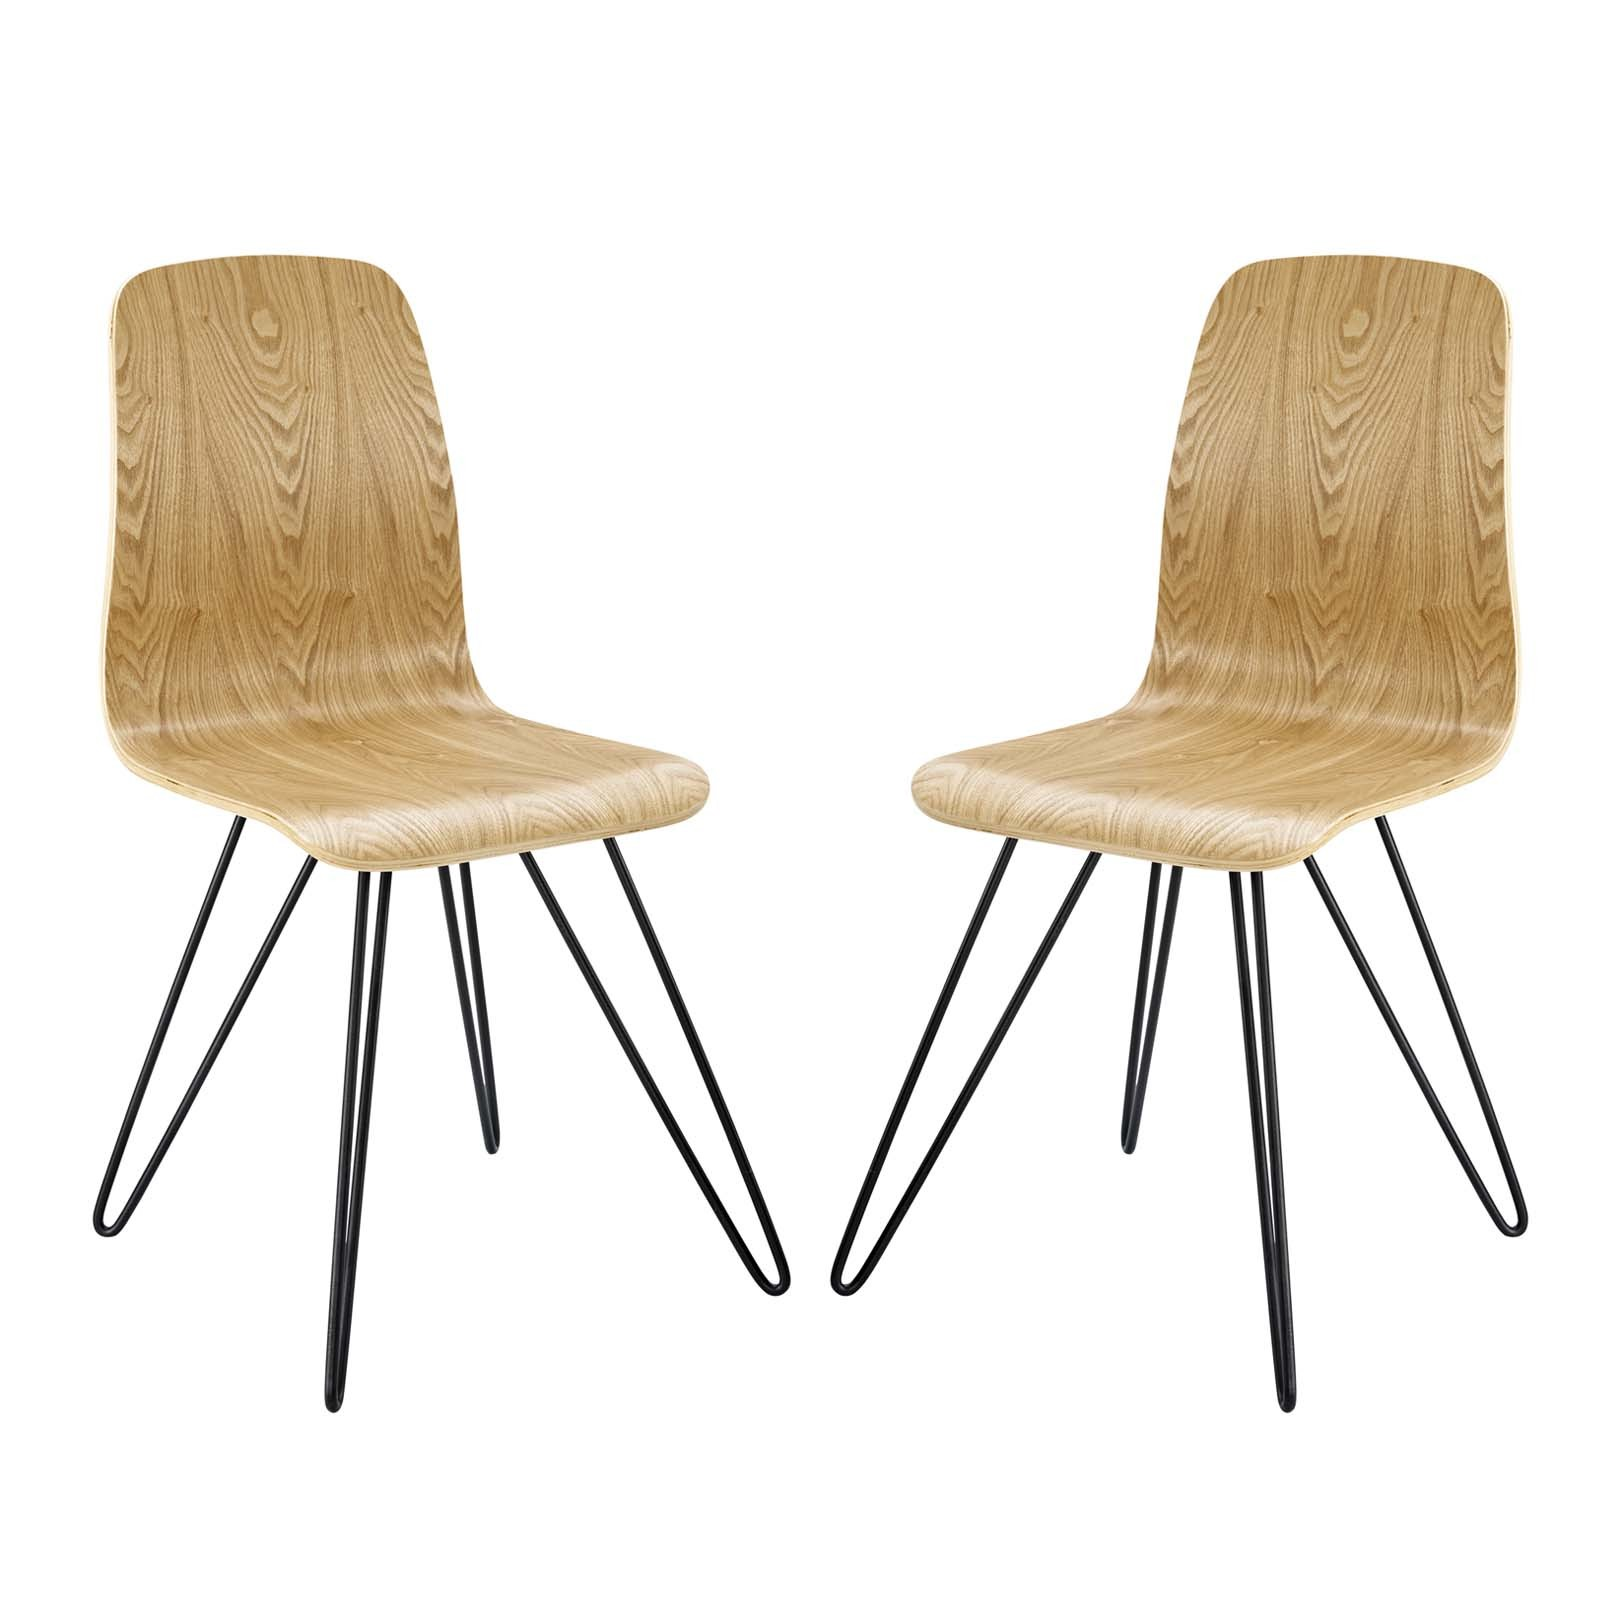 Drift Dining Side Chair Set of 2